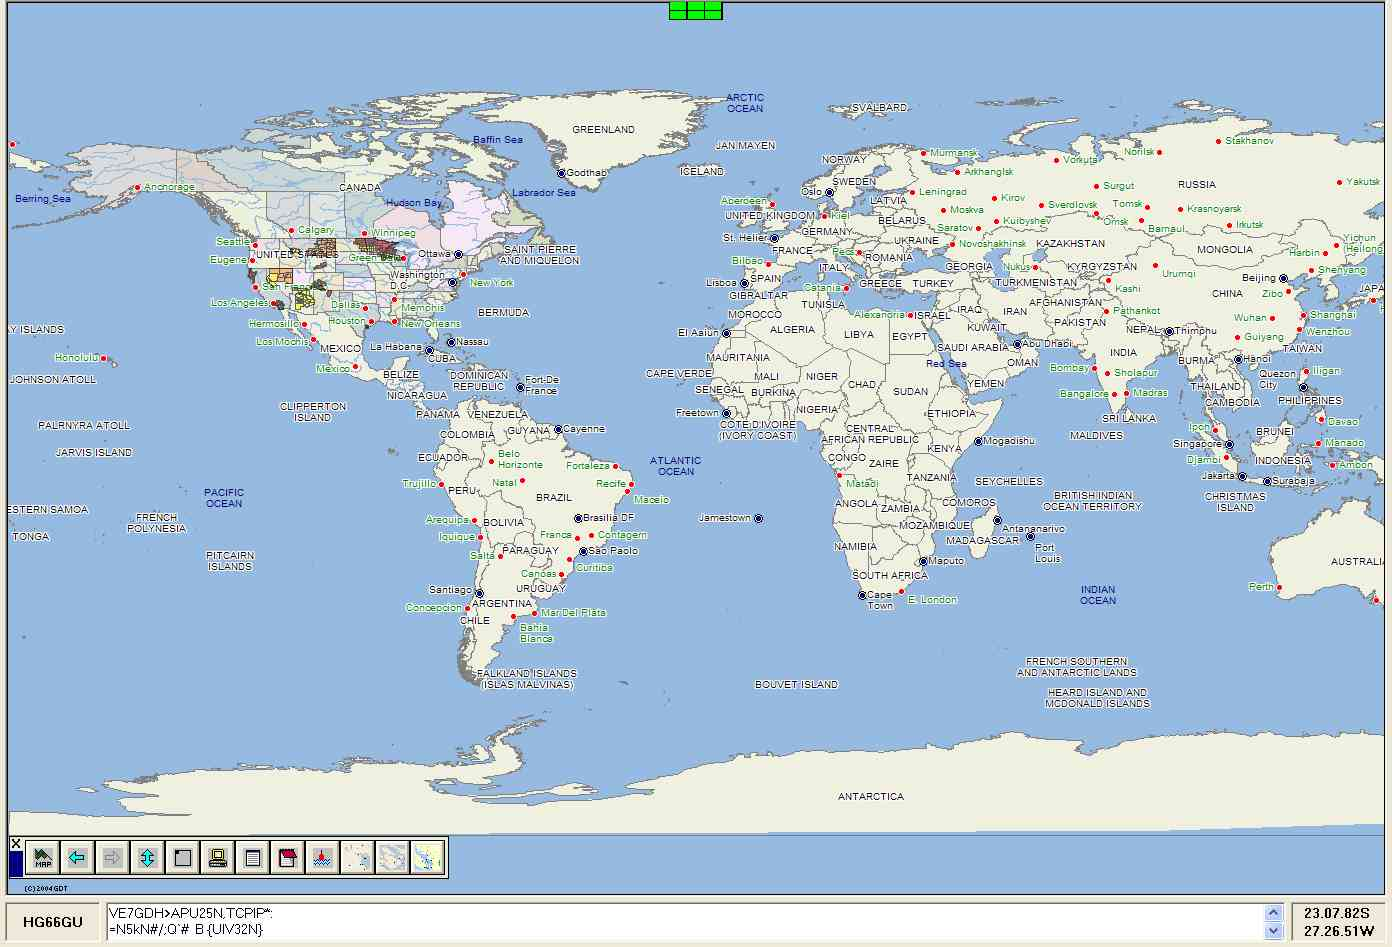 PMapServer7 beta running in UI-View32 - Map of the World. Click picture to go back.